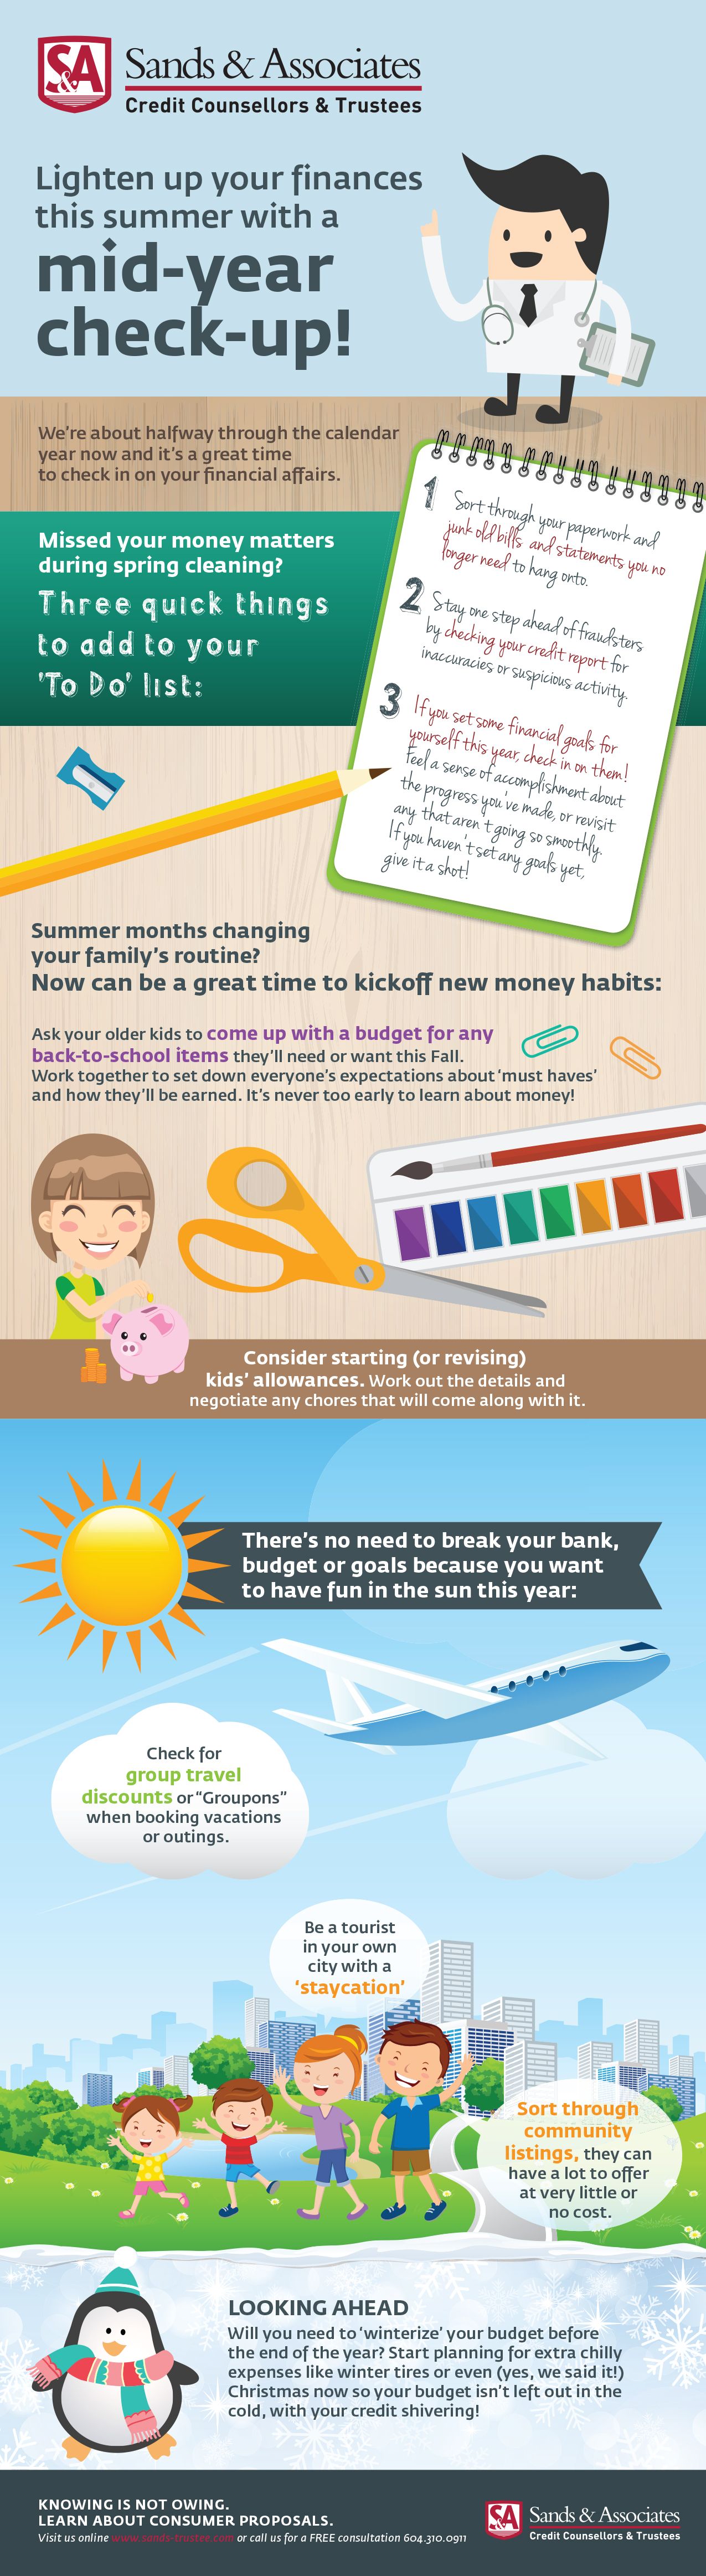 Sands & Associates financial check-up tips infographic